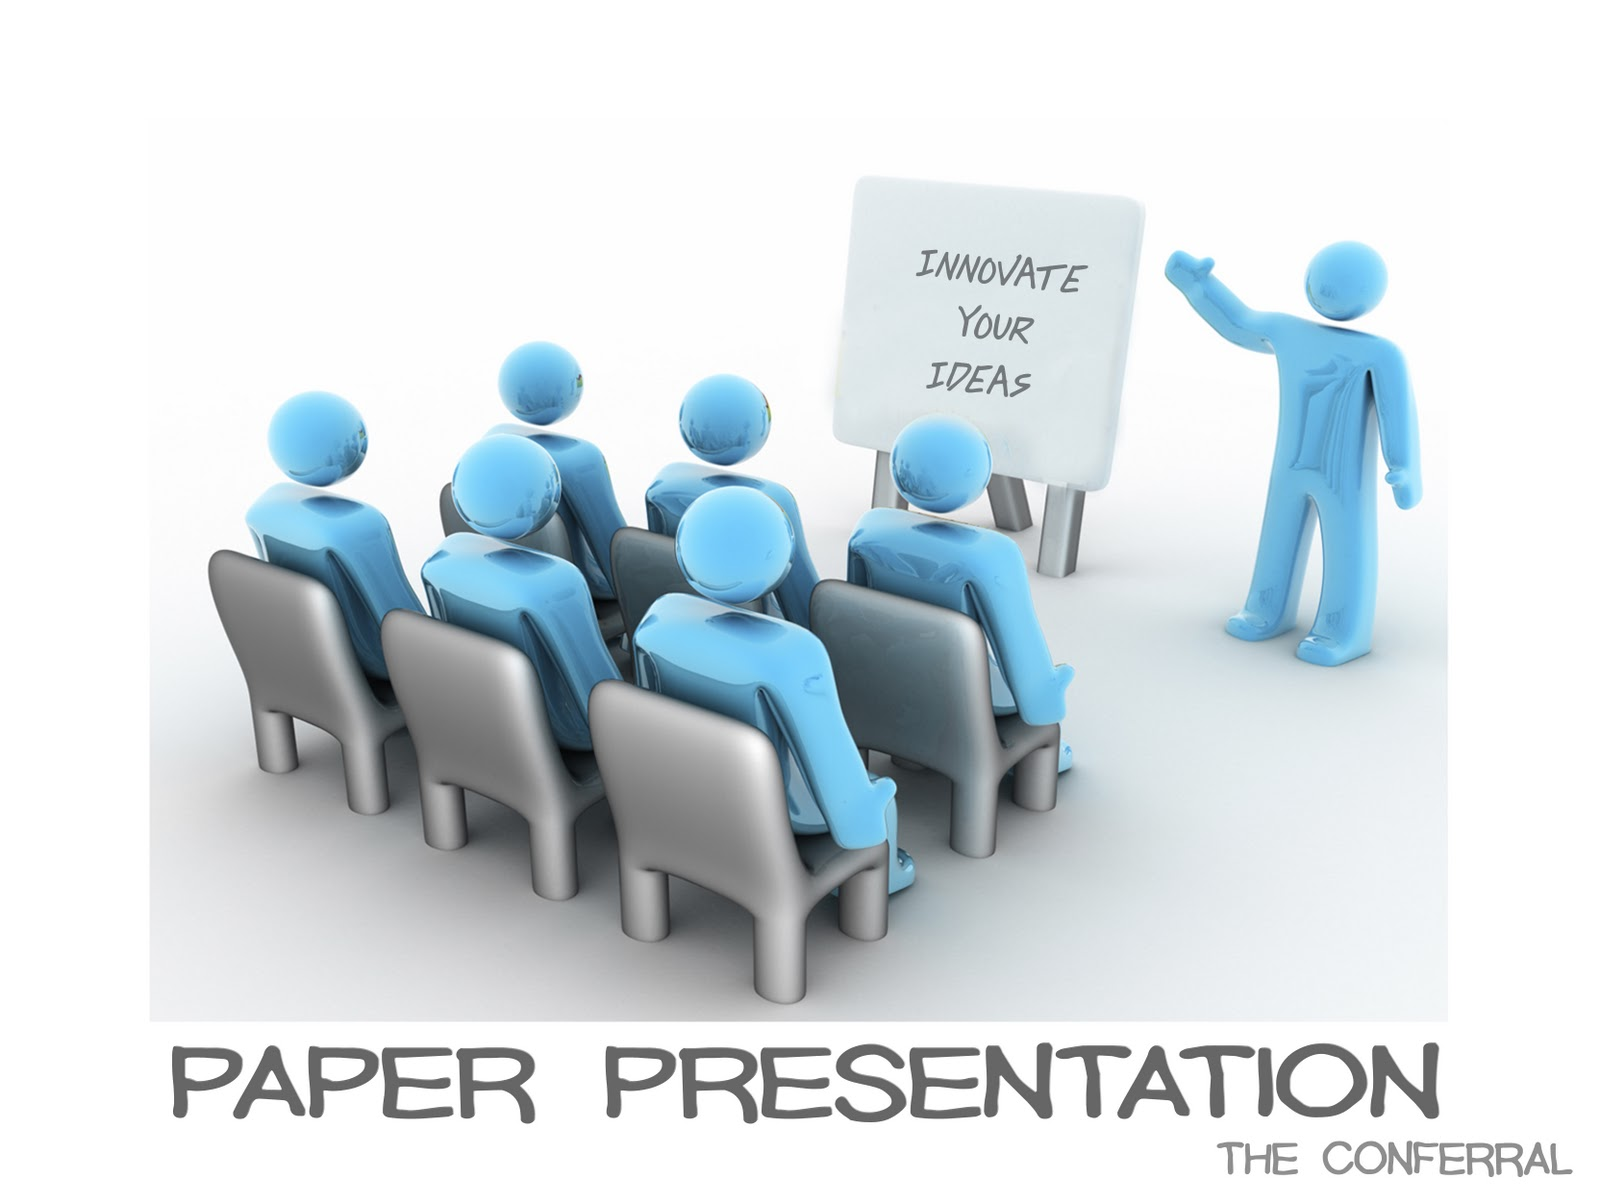 topics for paper presentation in civil engineering Then mail to us immediately to get the full reports, presentations & ppt  mechanical engineering seminar topics in ppt, mechanical engineering seminar topics journals, mechanical engineering seminar topics list, mechanical engineering seminar topics latest, mechanical engineering seminar topics list ppt, mechanical engineering seminar.